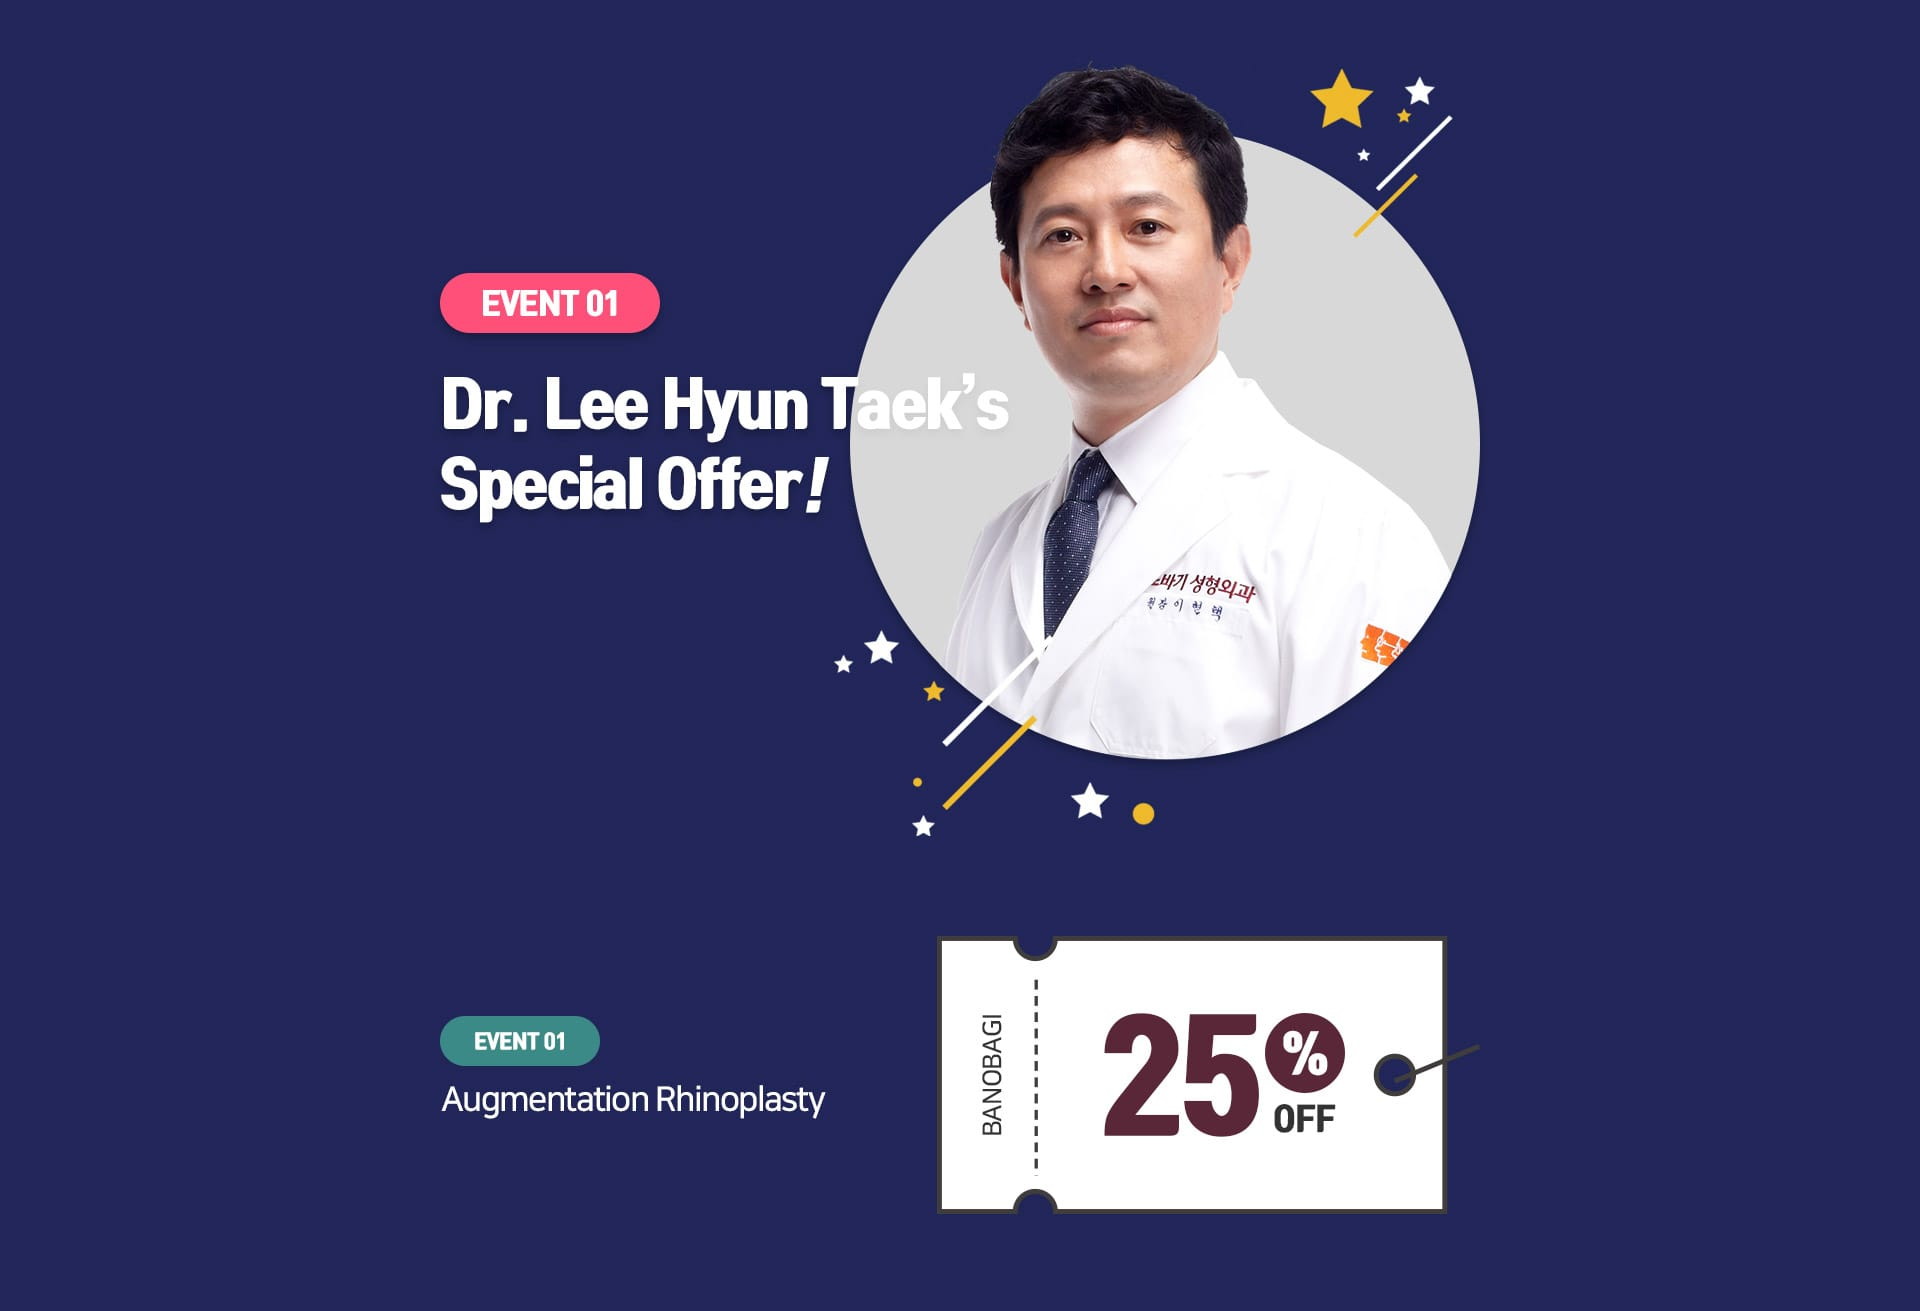 EVENT 01 Dr.Lee Hyun Taek's Special Offer!